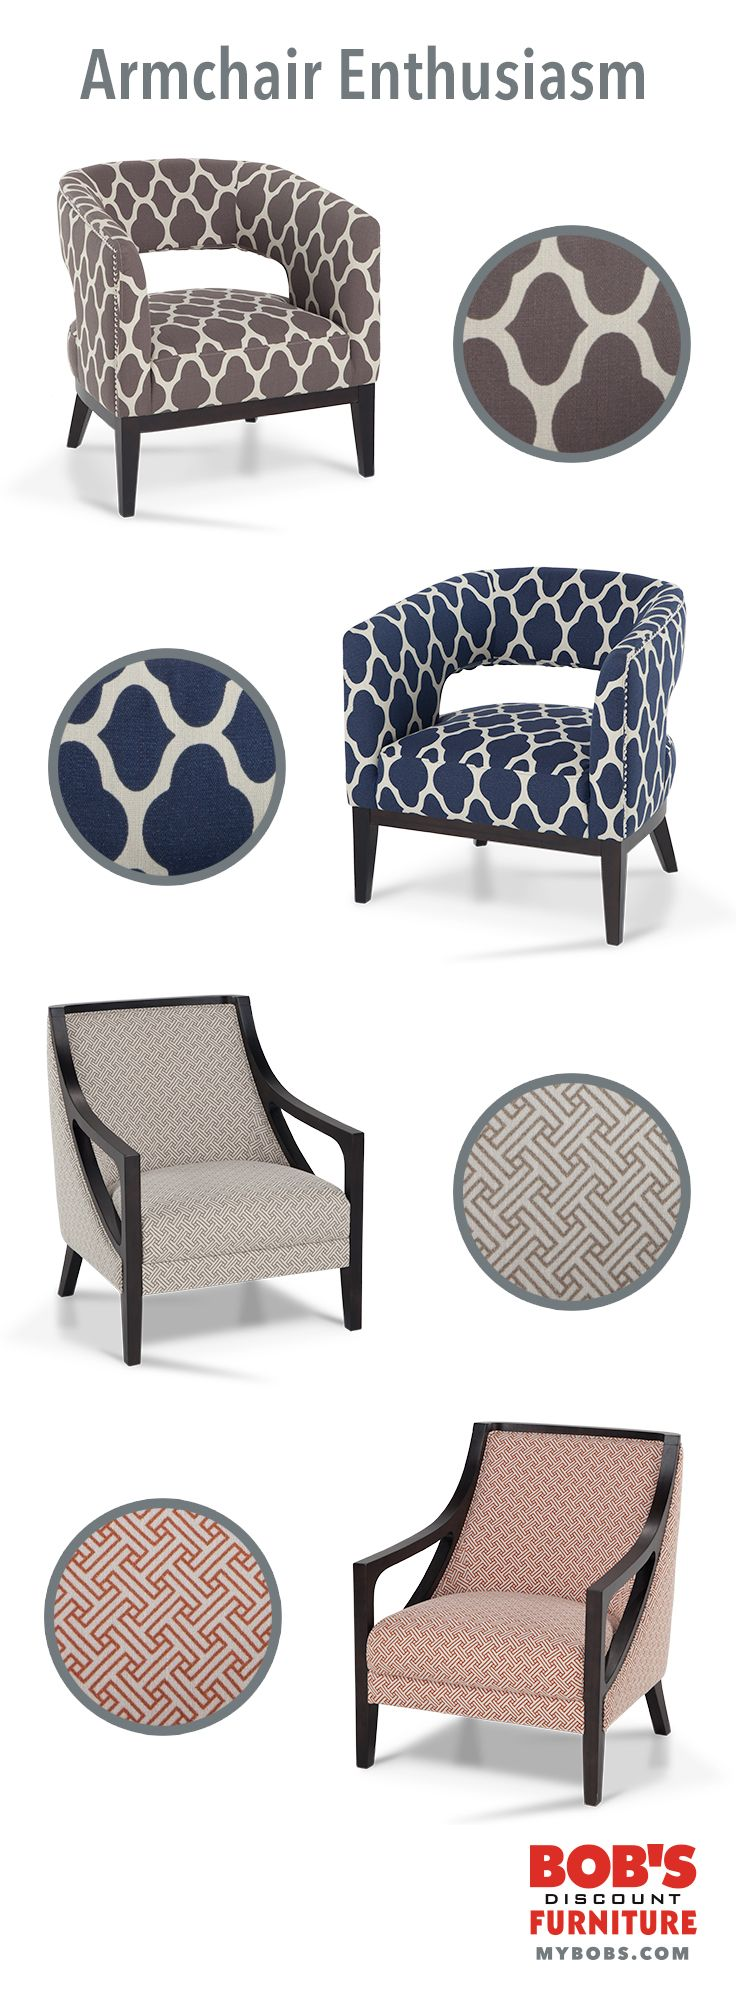 Healey camelback upholstered chair bloomdesignstudio - Healey Camelback Upholstered Chair Bloomdesignstudio Looking To Add Fresh Style To Your Homedecor My Bonnie Download